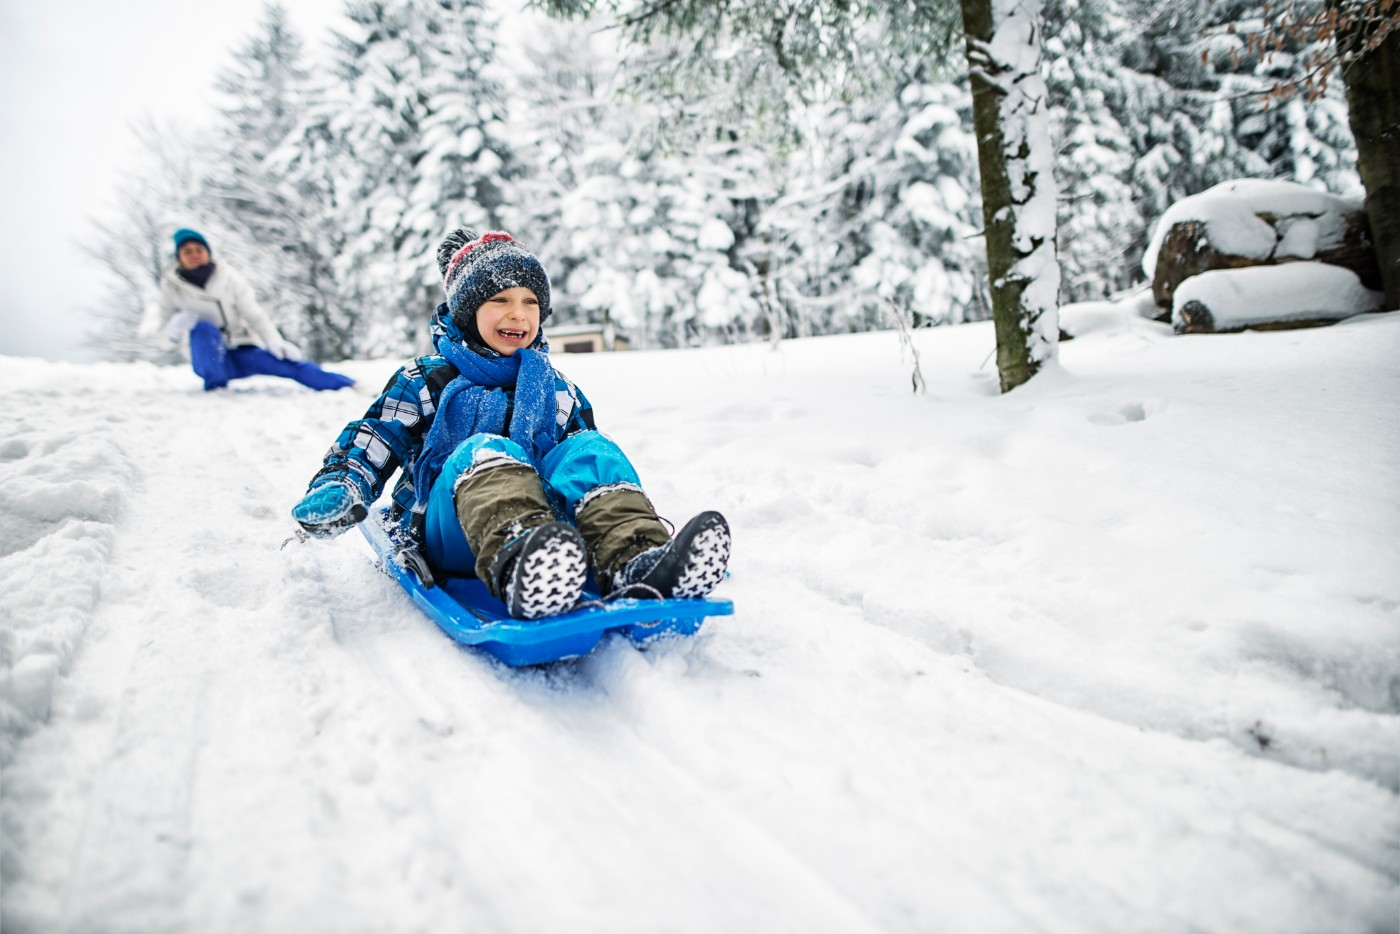 https://tickertapecdn.tdameritrade.com/assets/images/pages/md/child sledding: small-cap stocks outperforming large-cap stocks